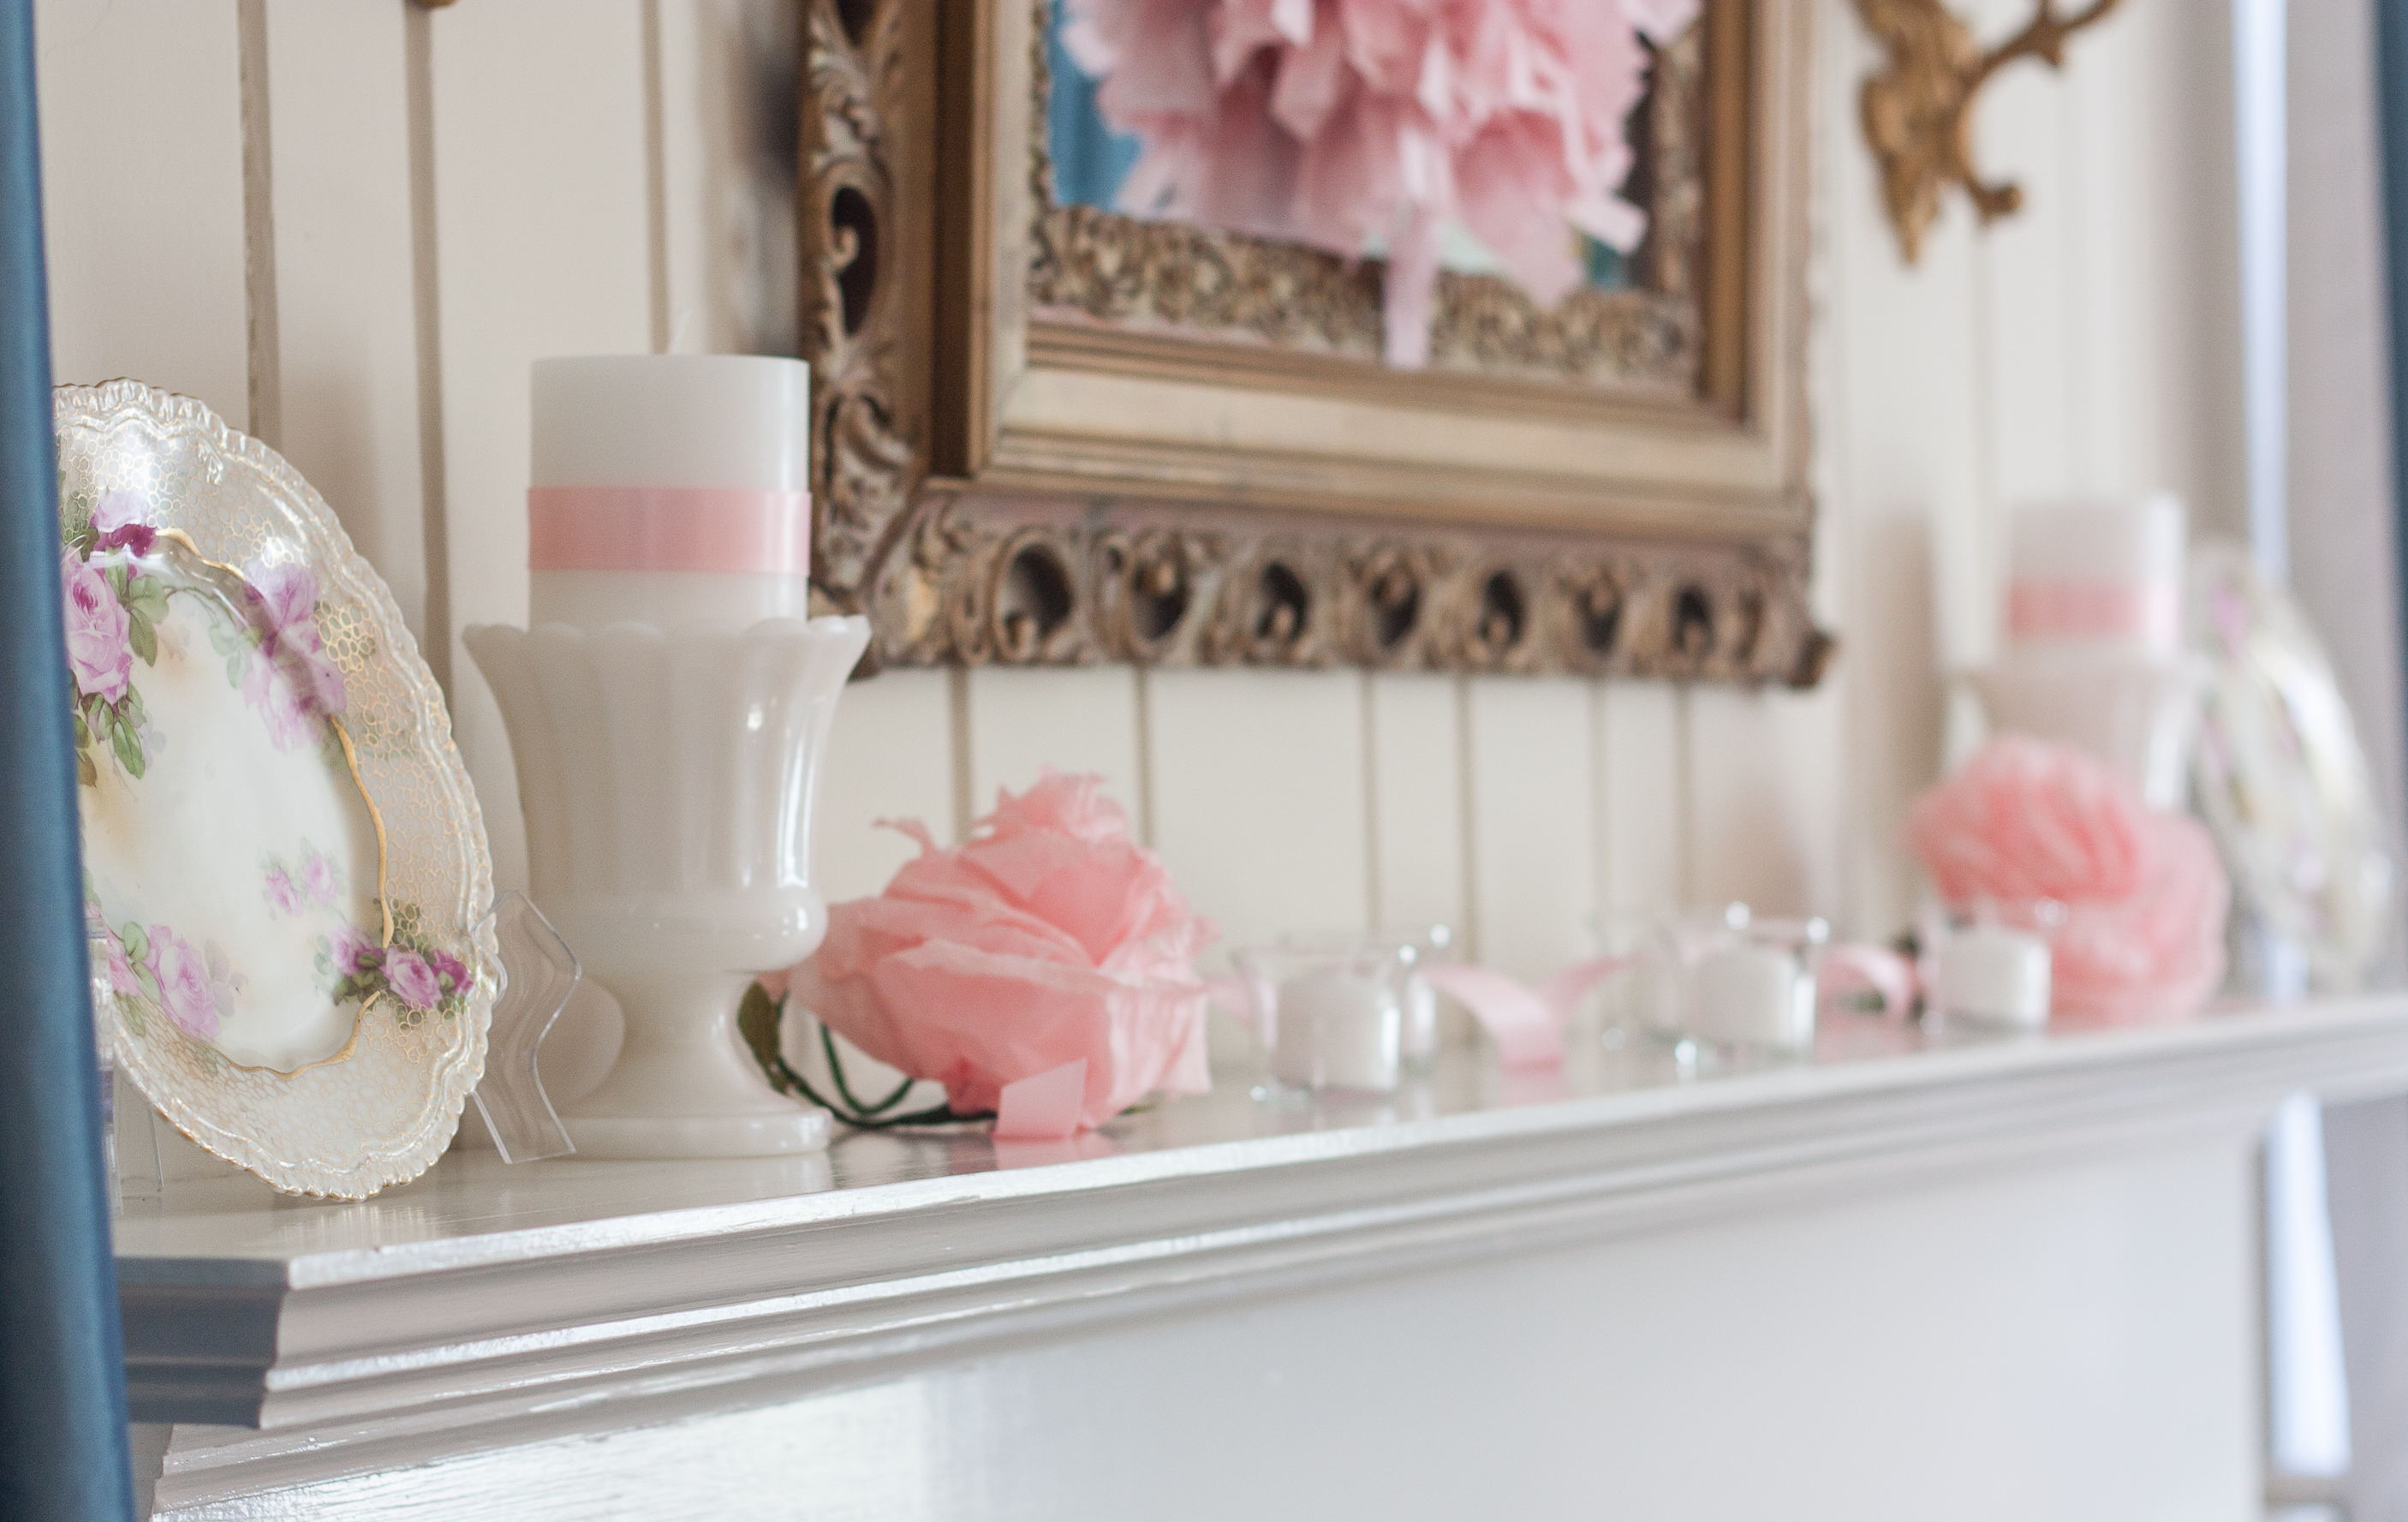 Romantic and Vintage Valentine's Day Mantel - See a mantel decorated with antique floral plates, milk glass, crepe paper flowers, and votives filled with white candles. #valentinesday #valentinesdaydecor #romantic #romanticdecor #vintage #vintagedecor